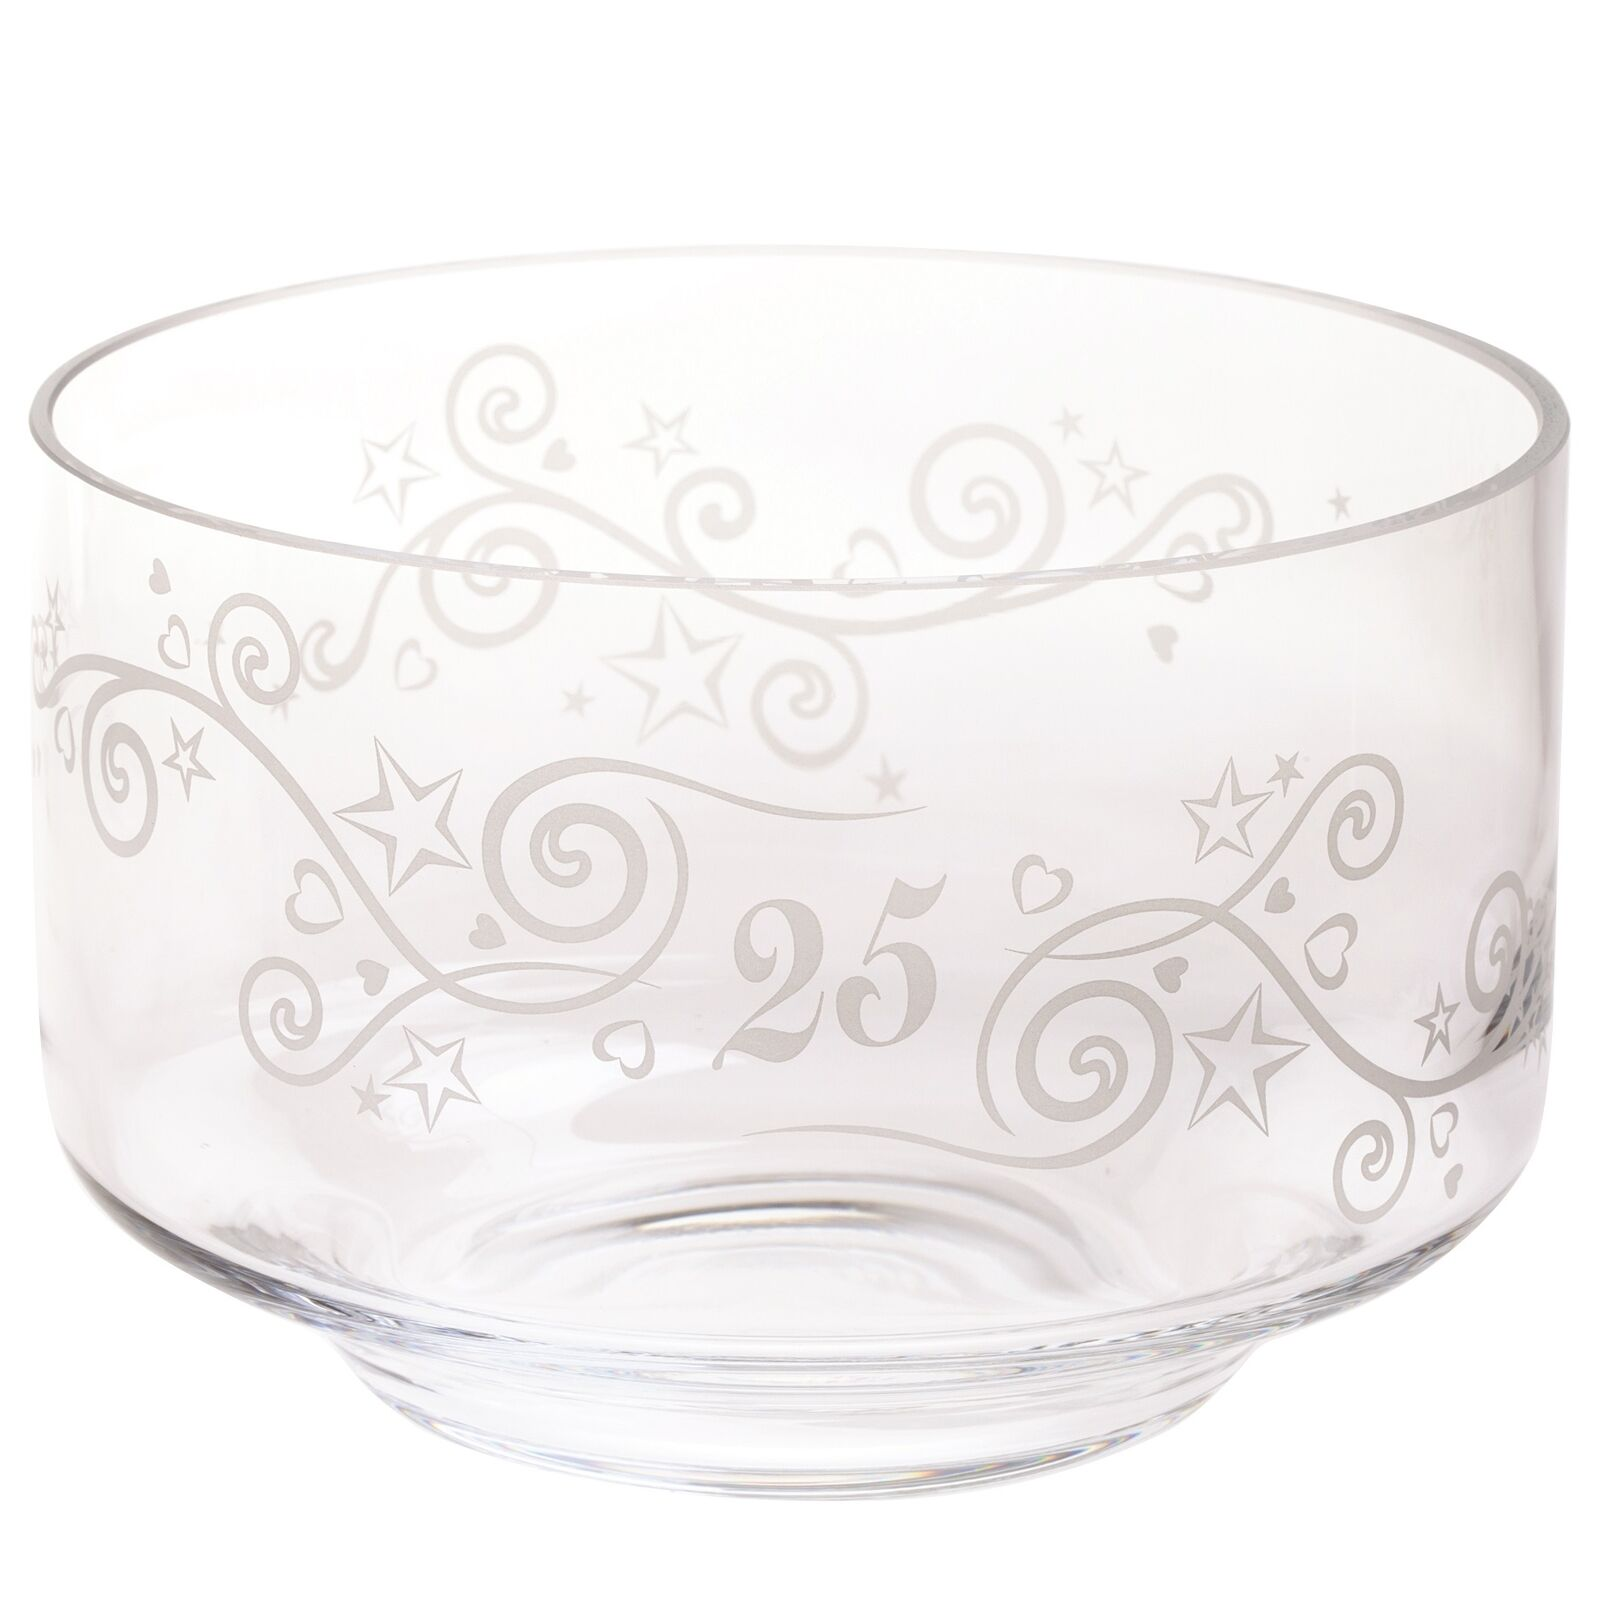 Dartington Crystal BD320125 Celebrate Bowl 25 Anniversary